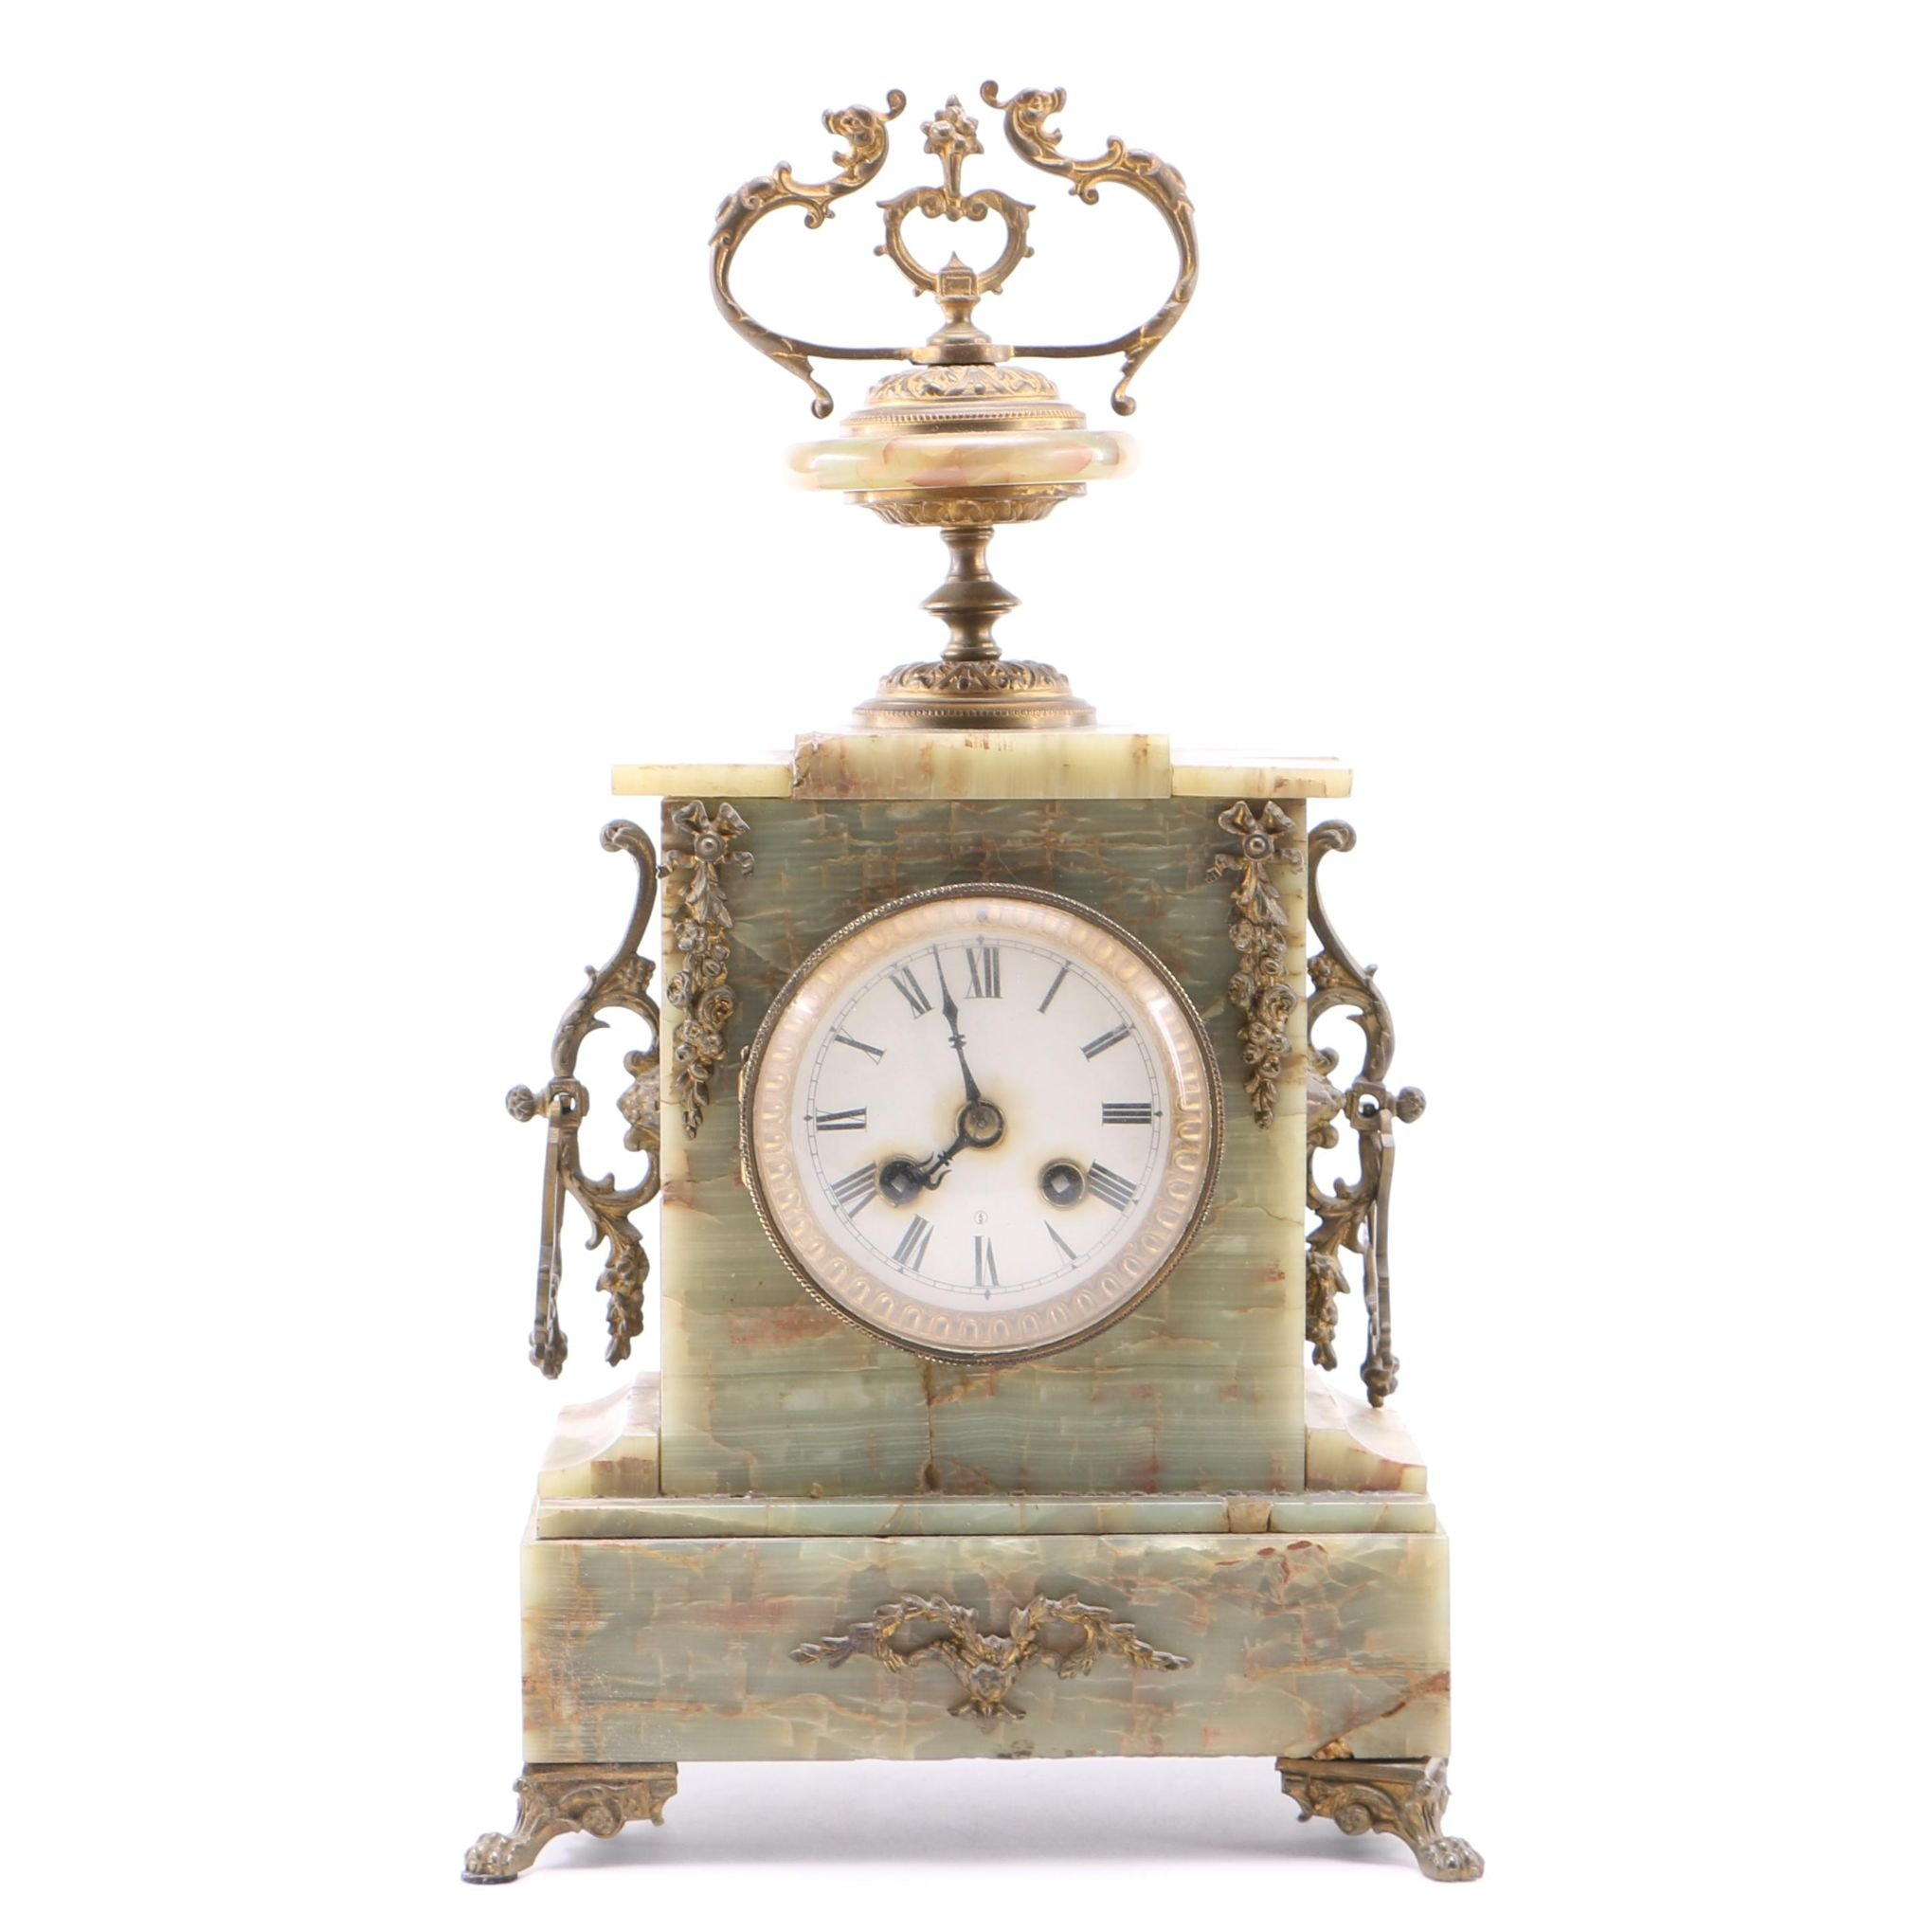 Agate and Spelter Mantel Clock